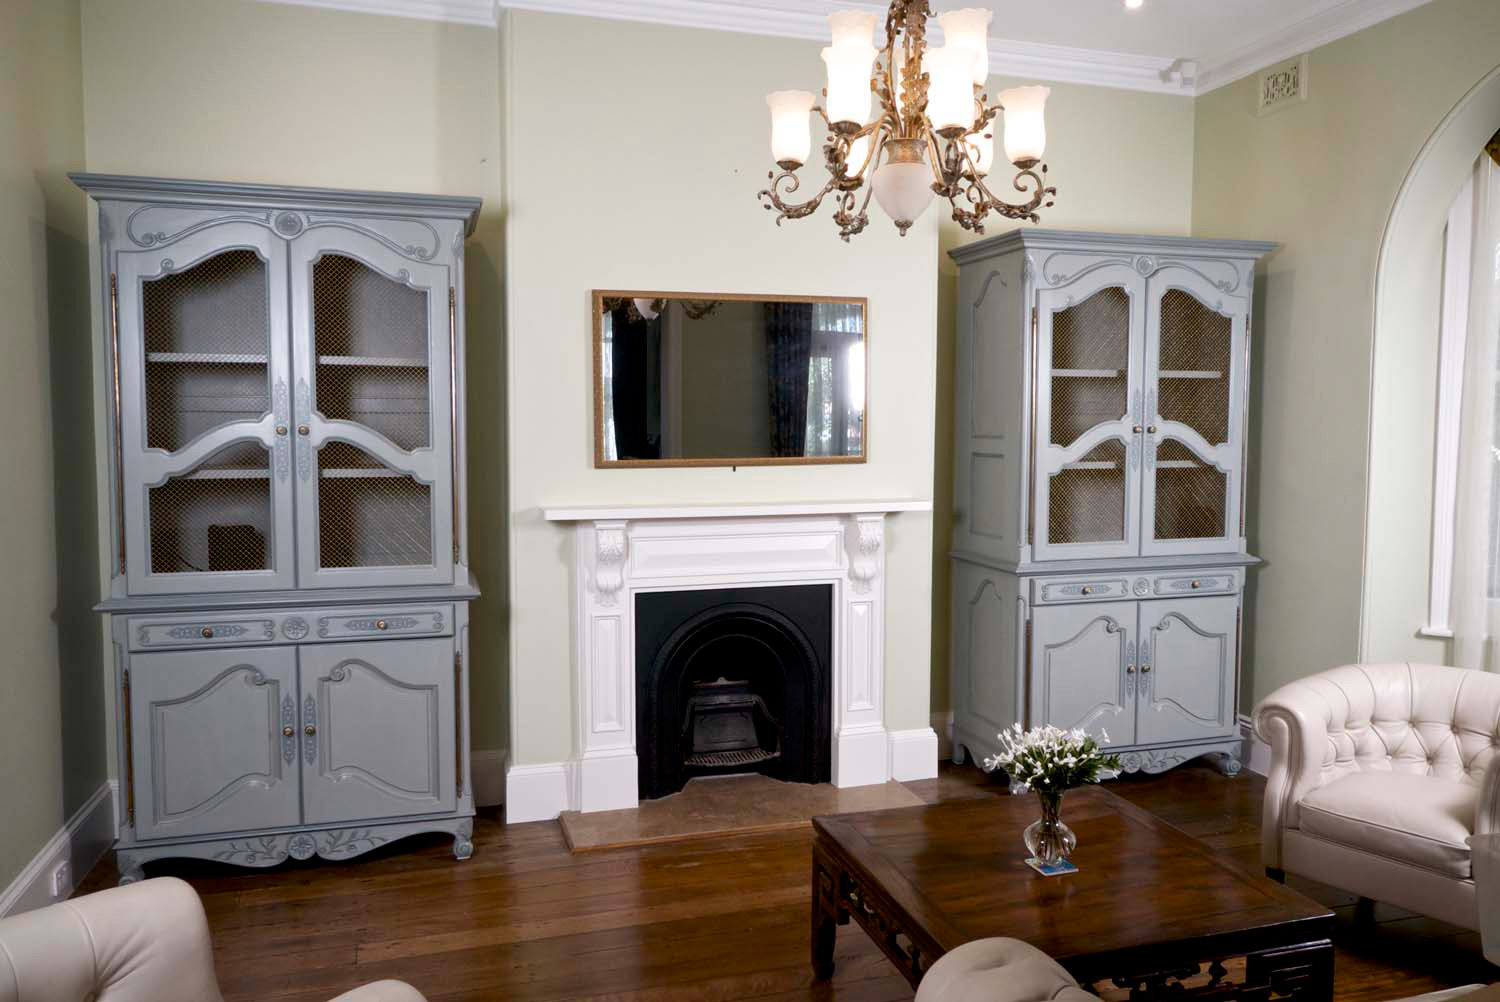 4 Lounge room with custom built buffets in french style with chandelier and coffee table